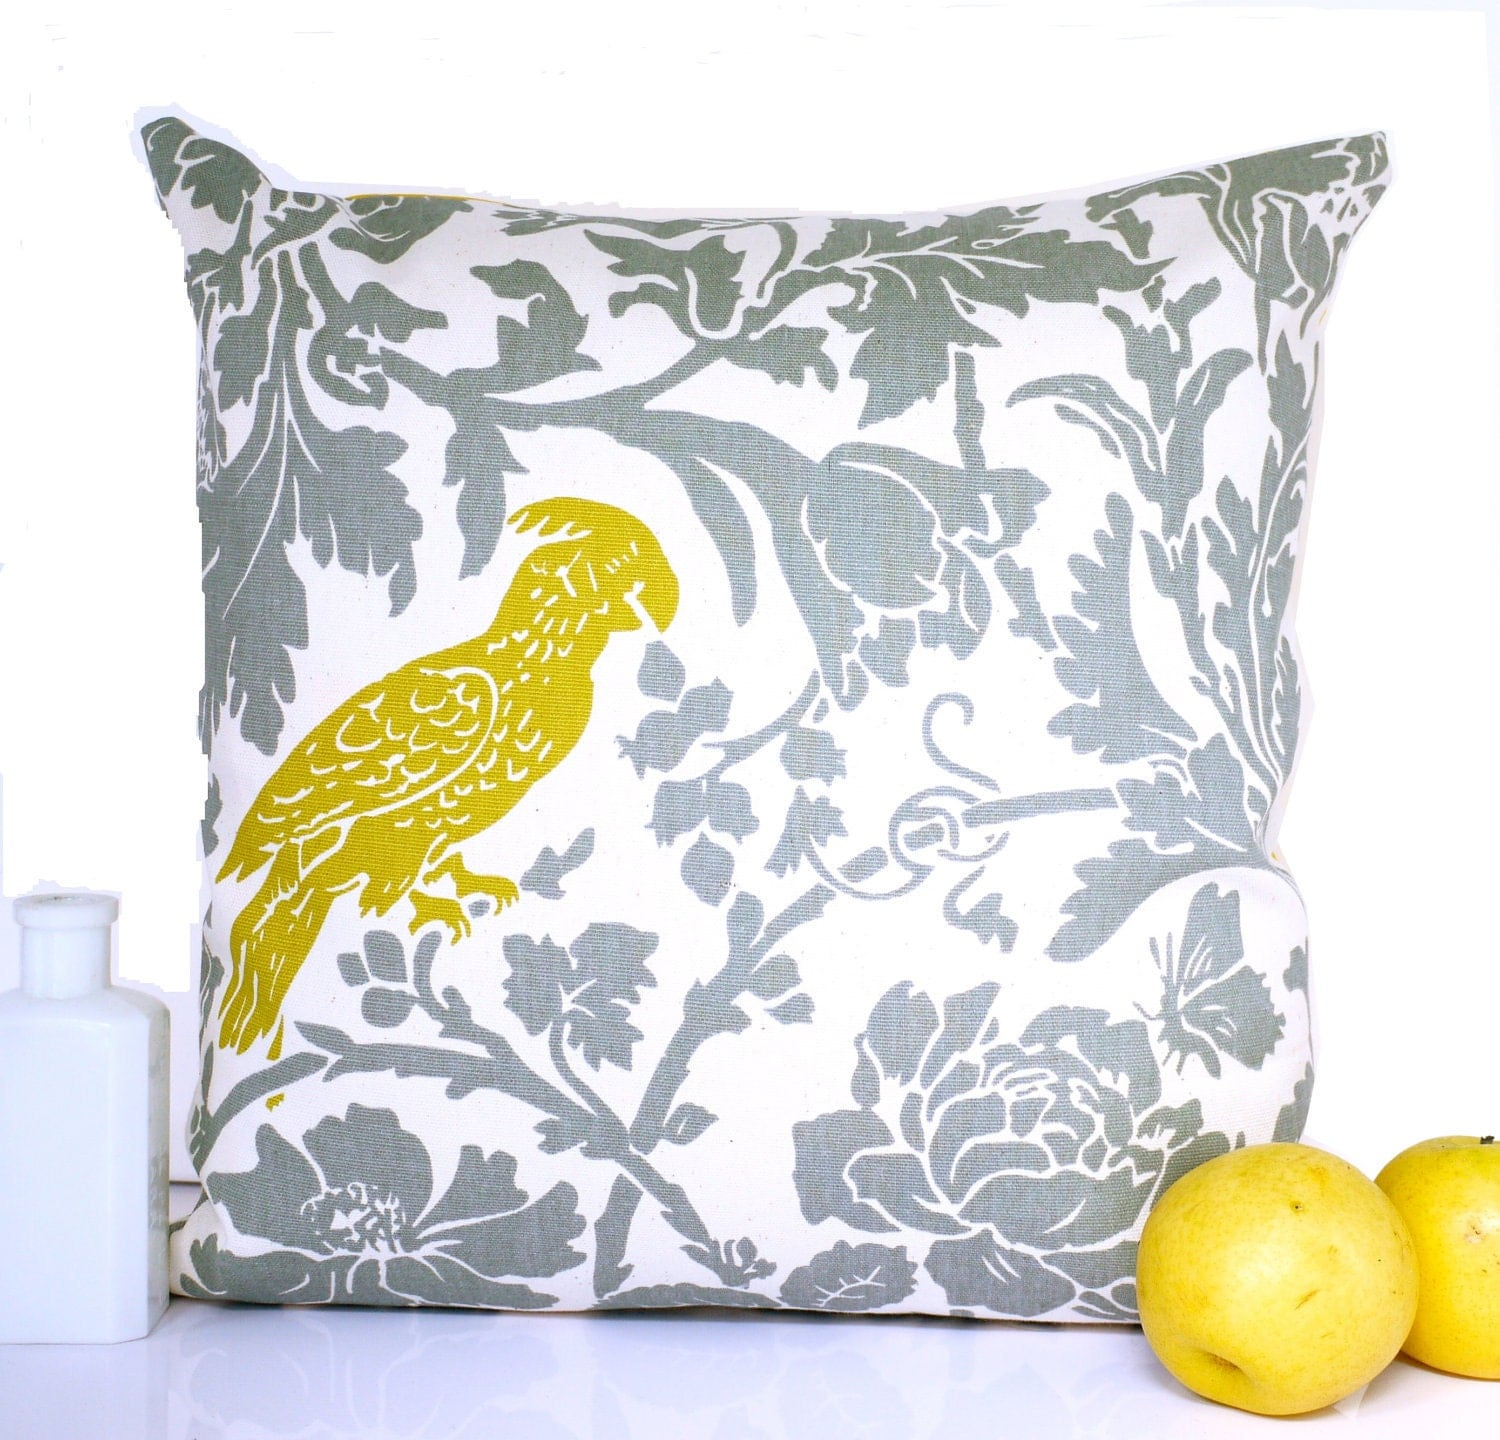 Bird cushion throw pillow grey cushion gray by HenriettaAndMorty